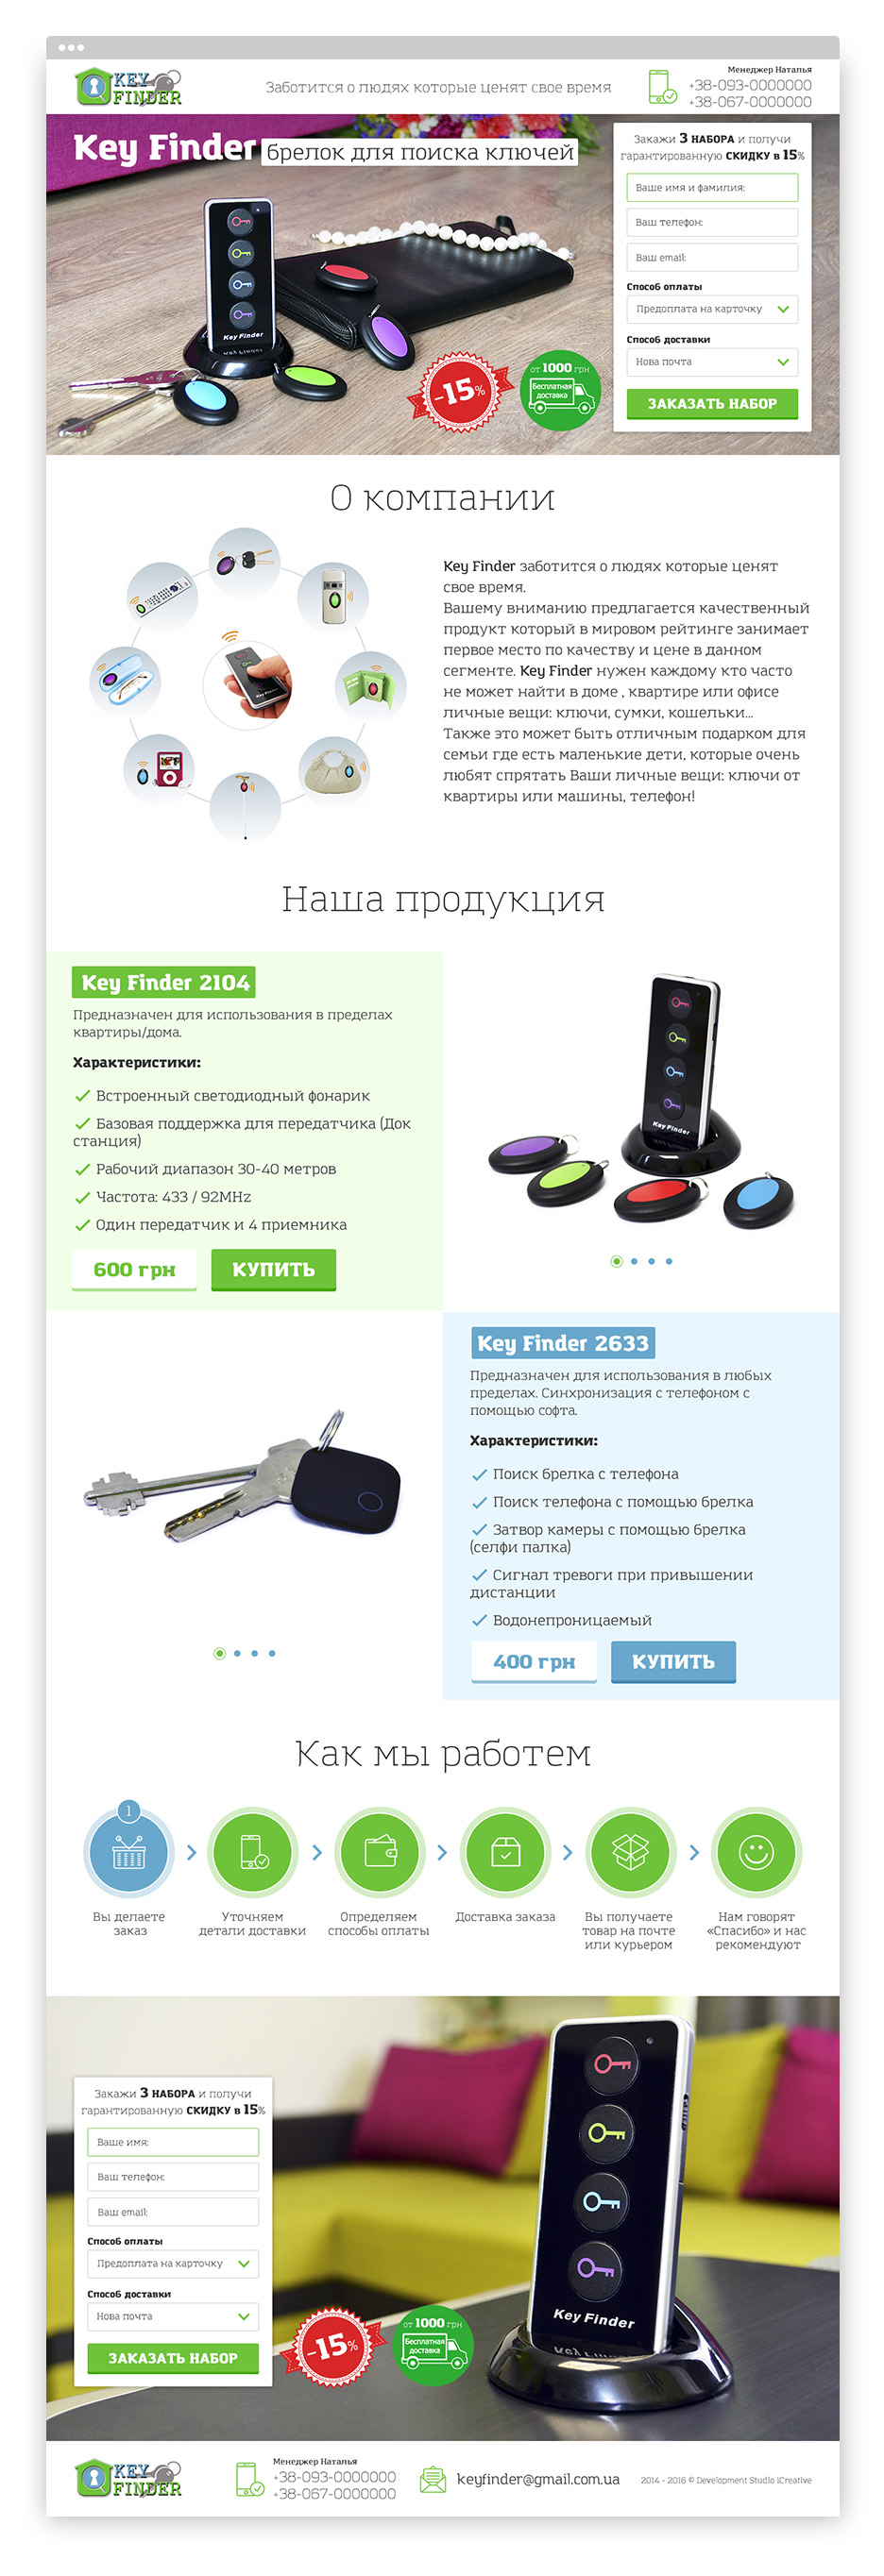 icreative-com-ua_key_finder